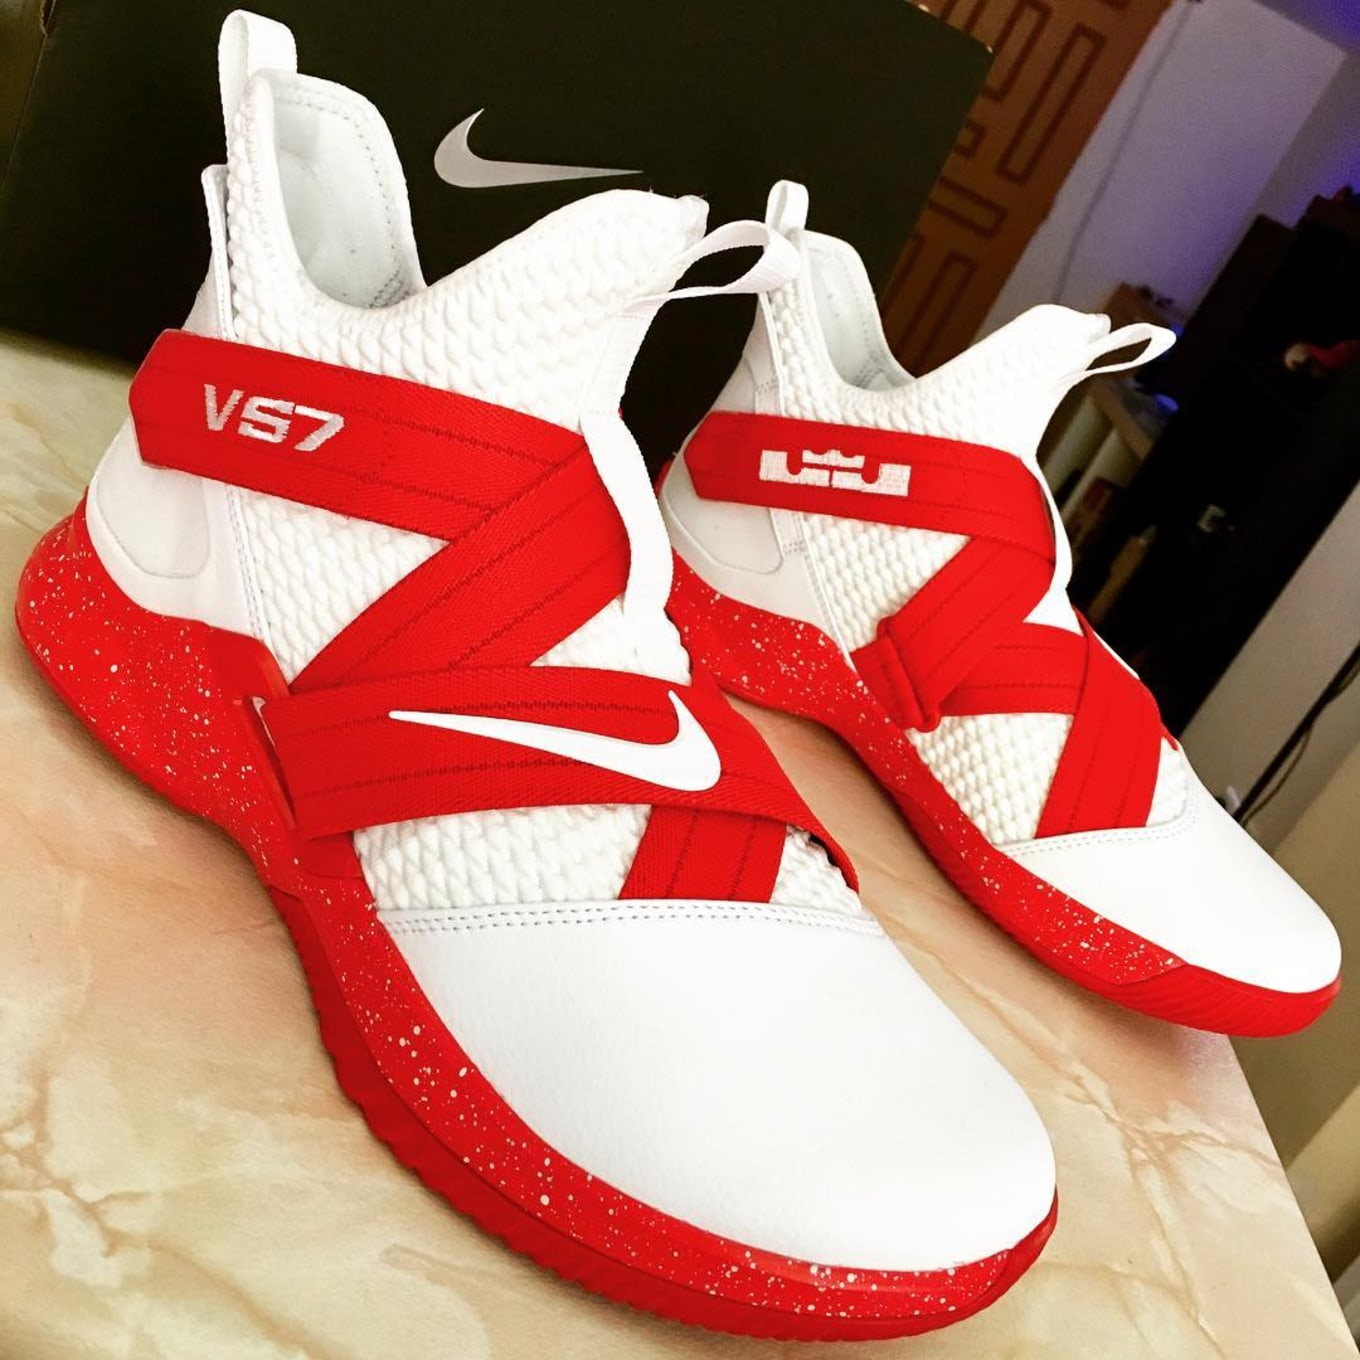 best sneakers 7299c 3e8af NIKEiD LeBron Soldier 12 Designs | Sole Collector